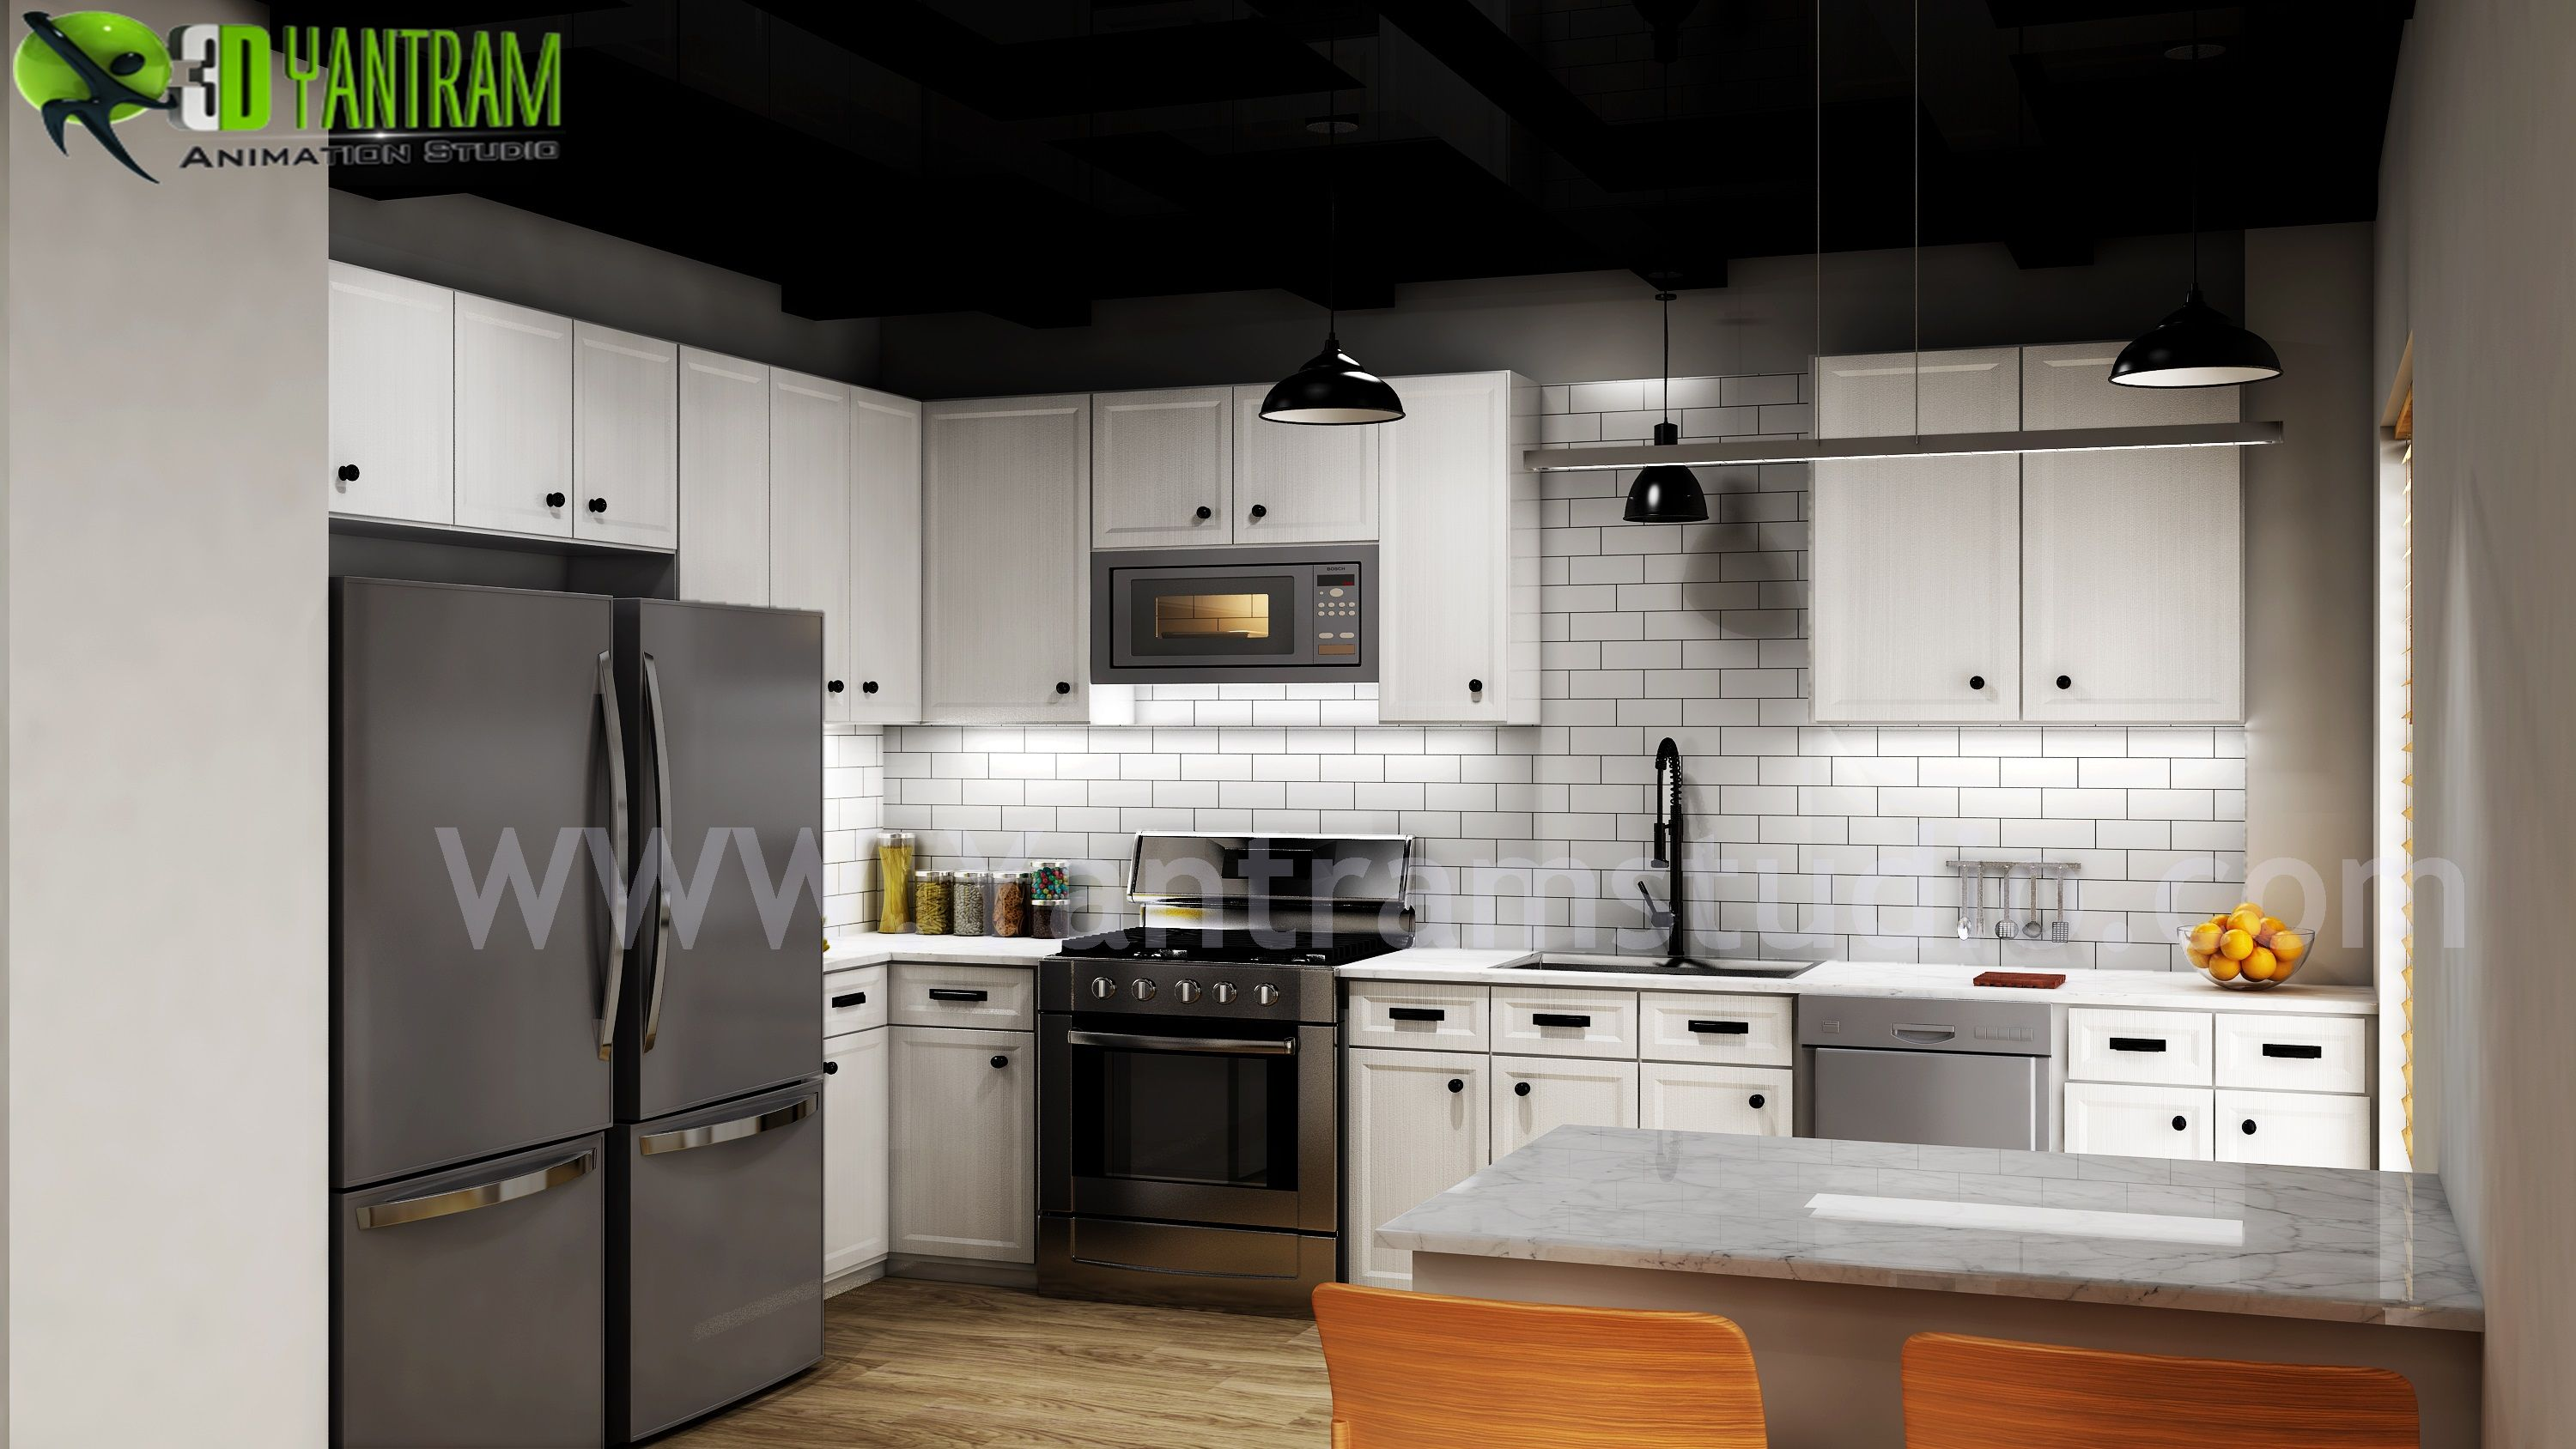 Modern Small Kitchen Design Ideas By Yantram 3d Interior Rendering